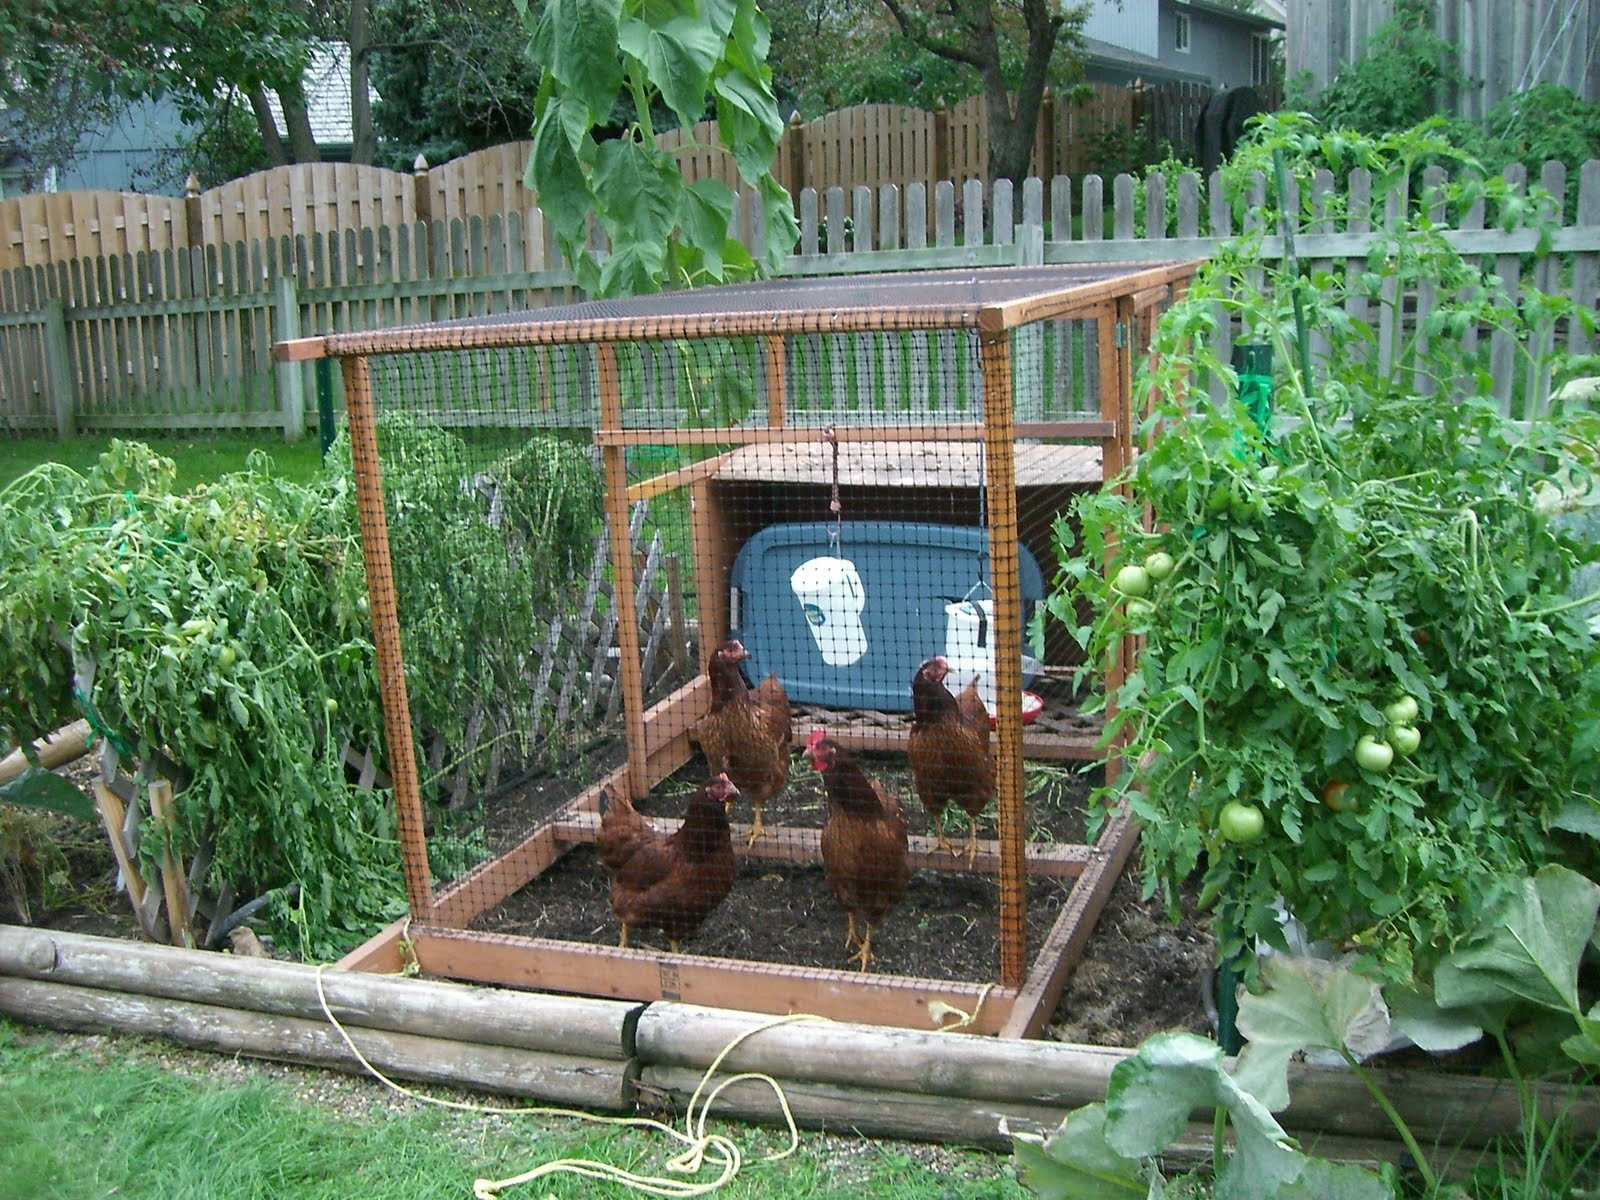 Home Garden Designs: Pools And Landscaping Ideas Vegetable Garden pertaining to Backyard Landscaping Ideas Vegetable Garden